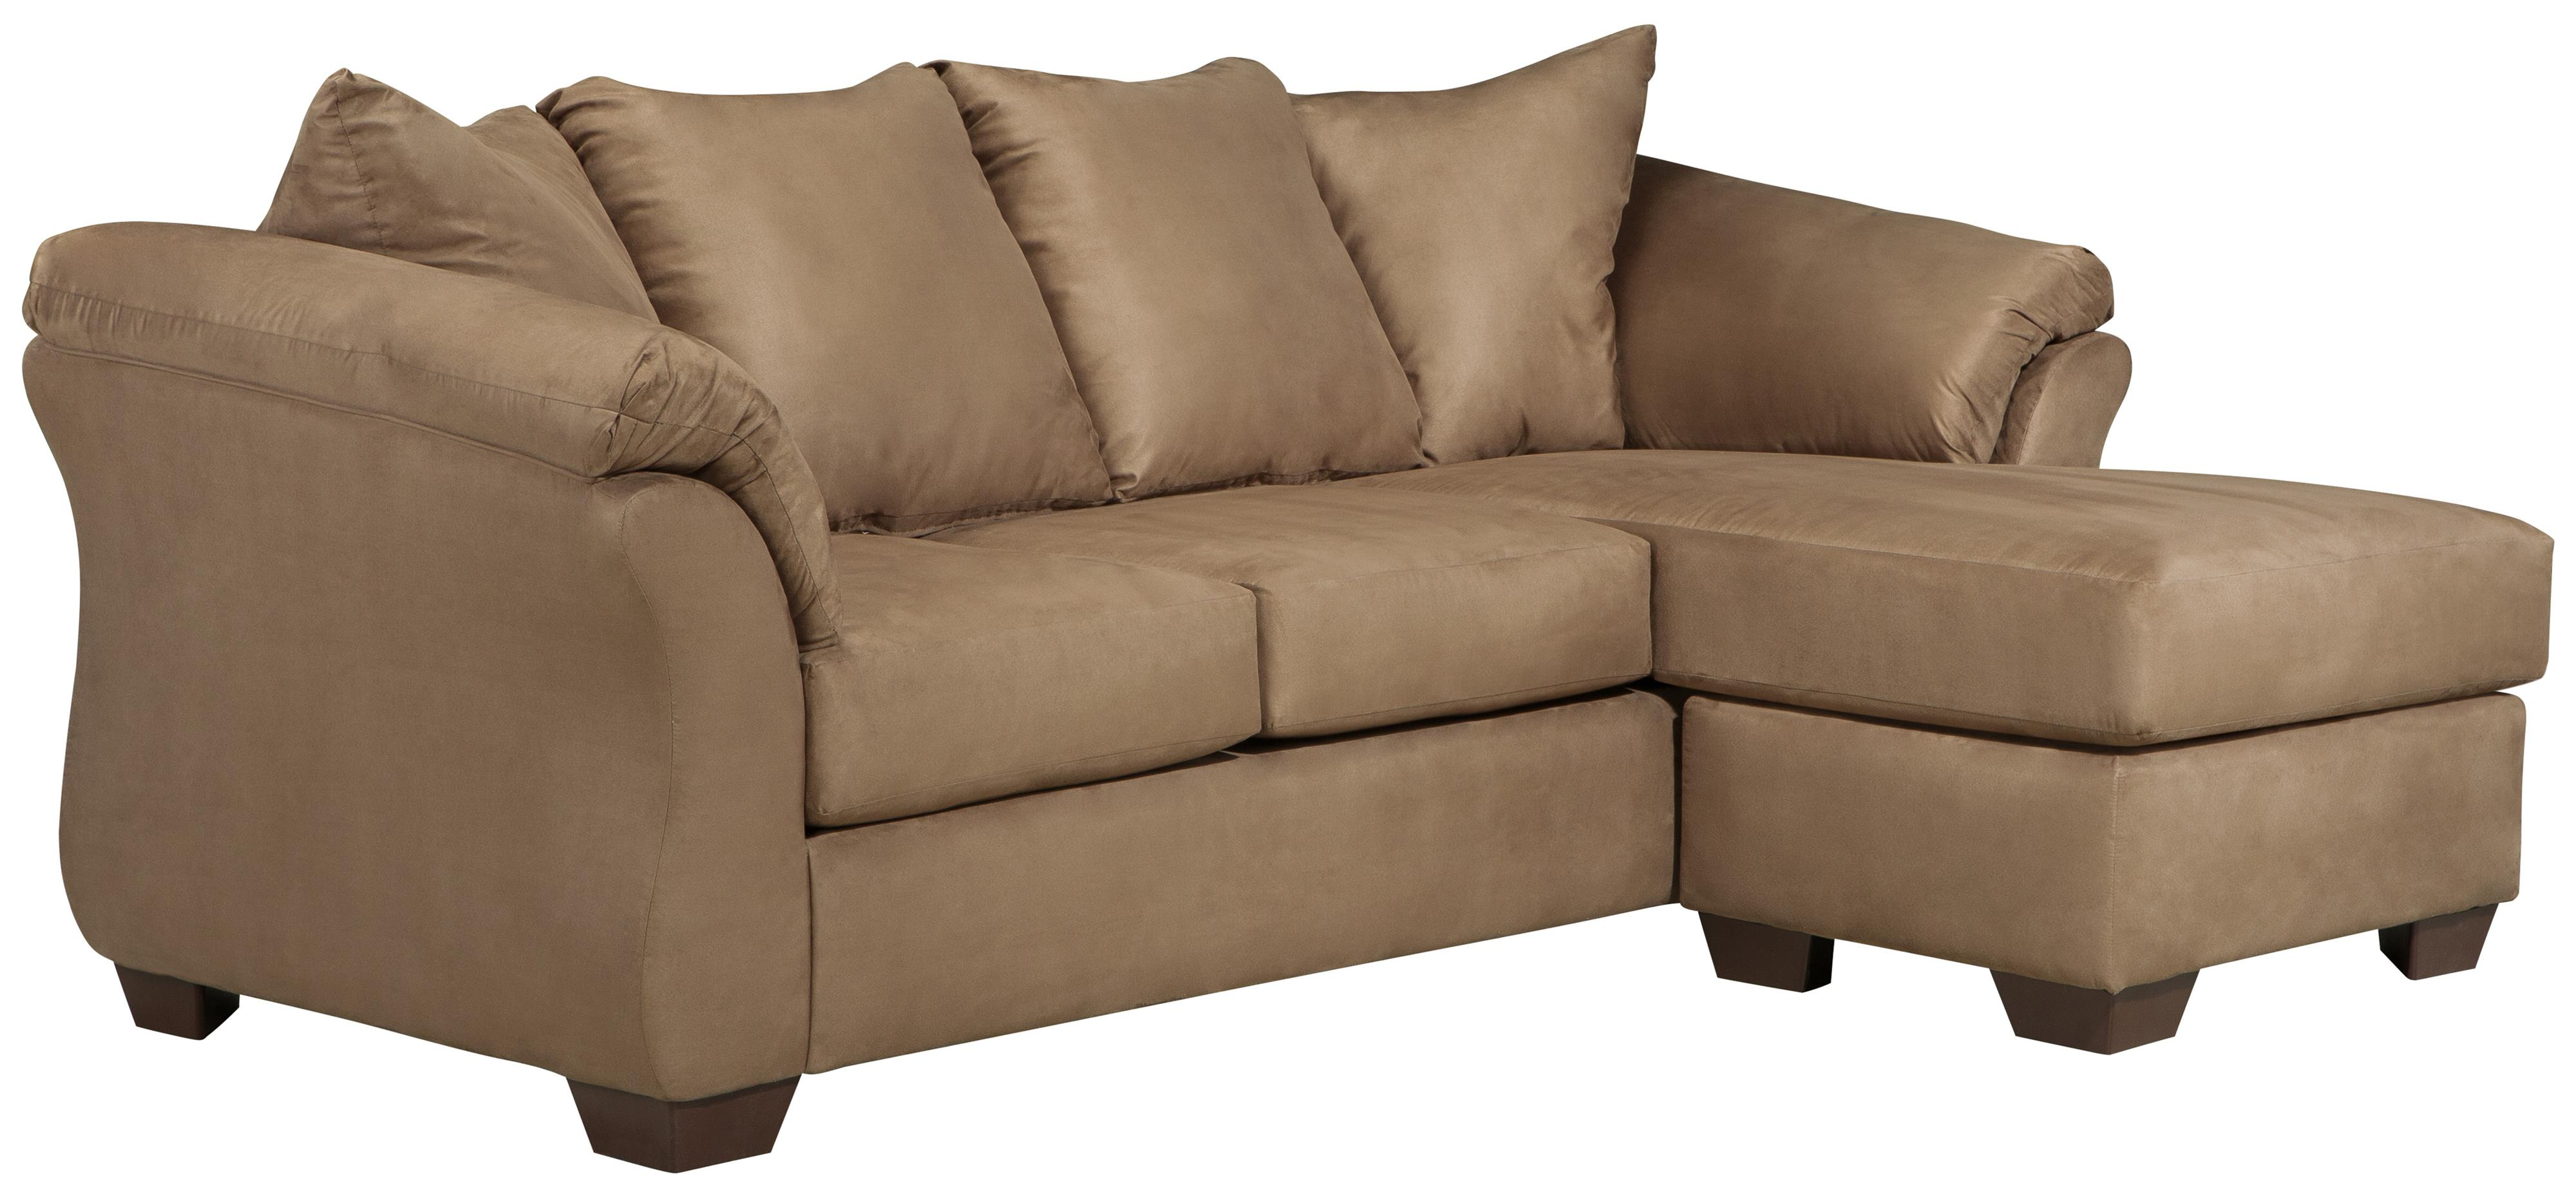 Signature Design by Ashley Darcy - Mocha Sofa Chaise - Item Number: 7500218